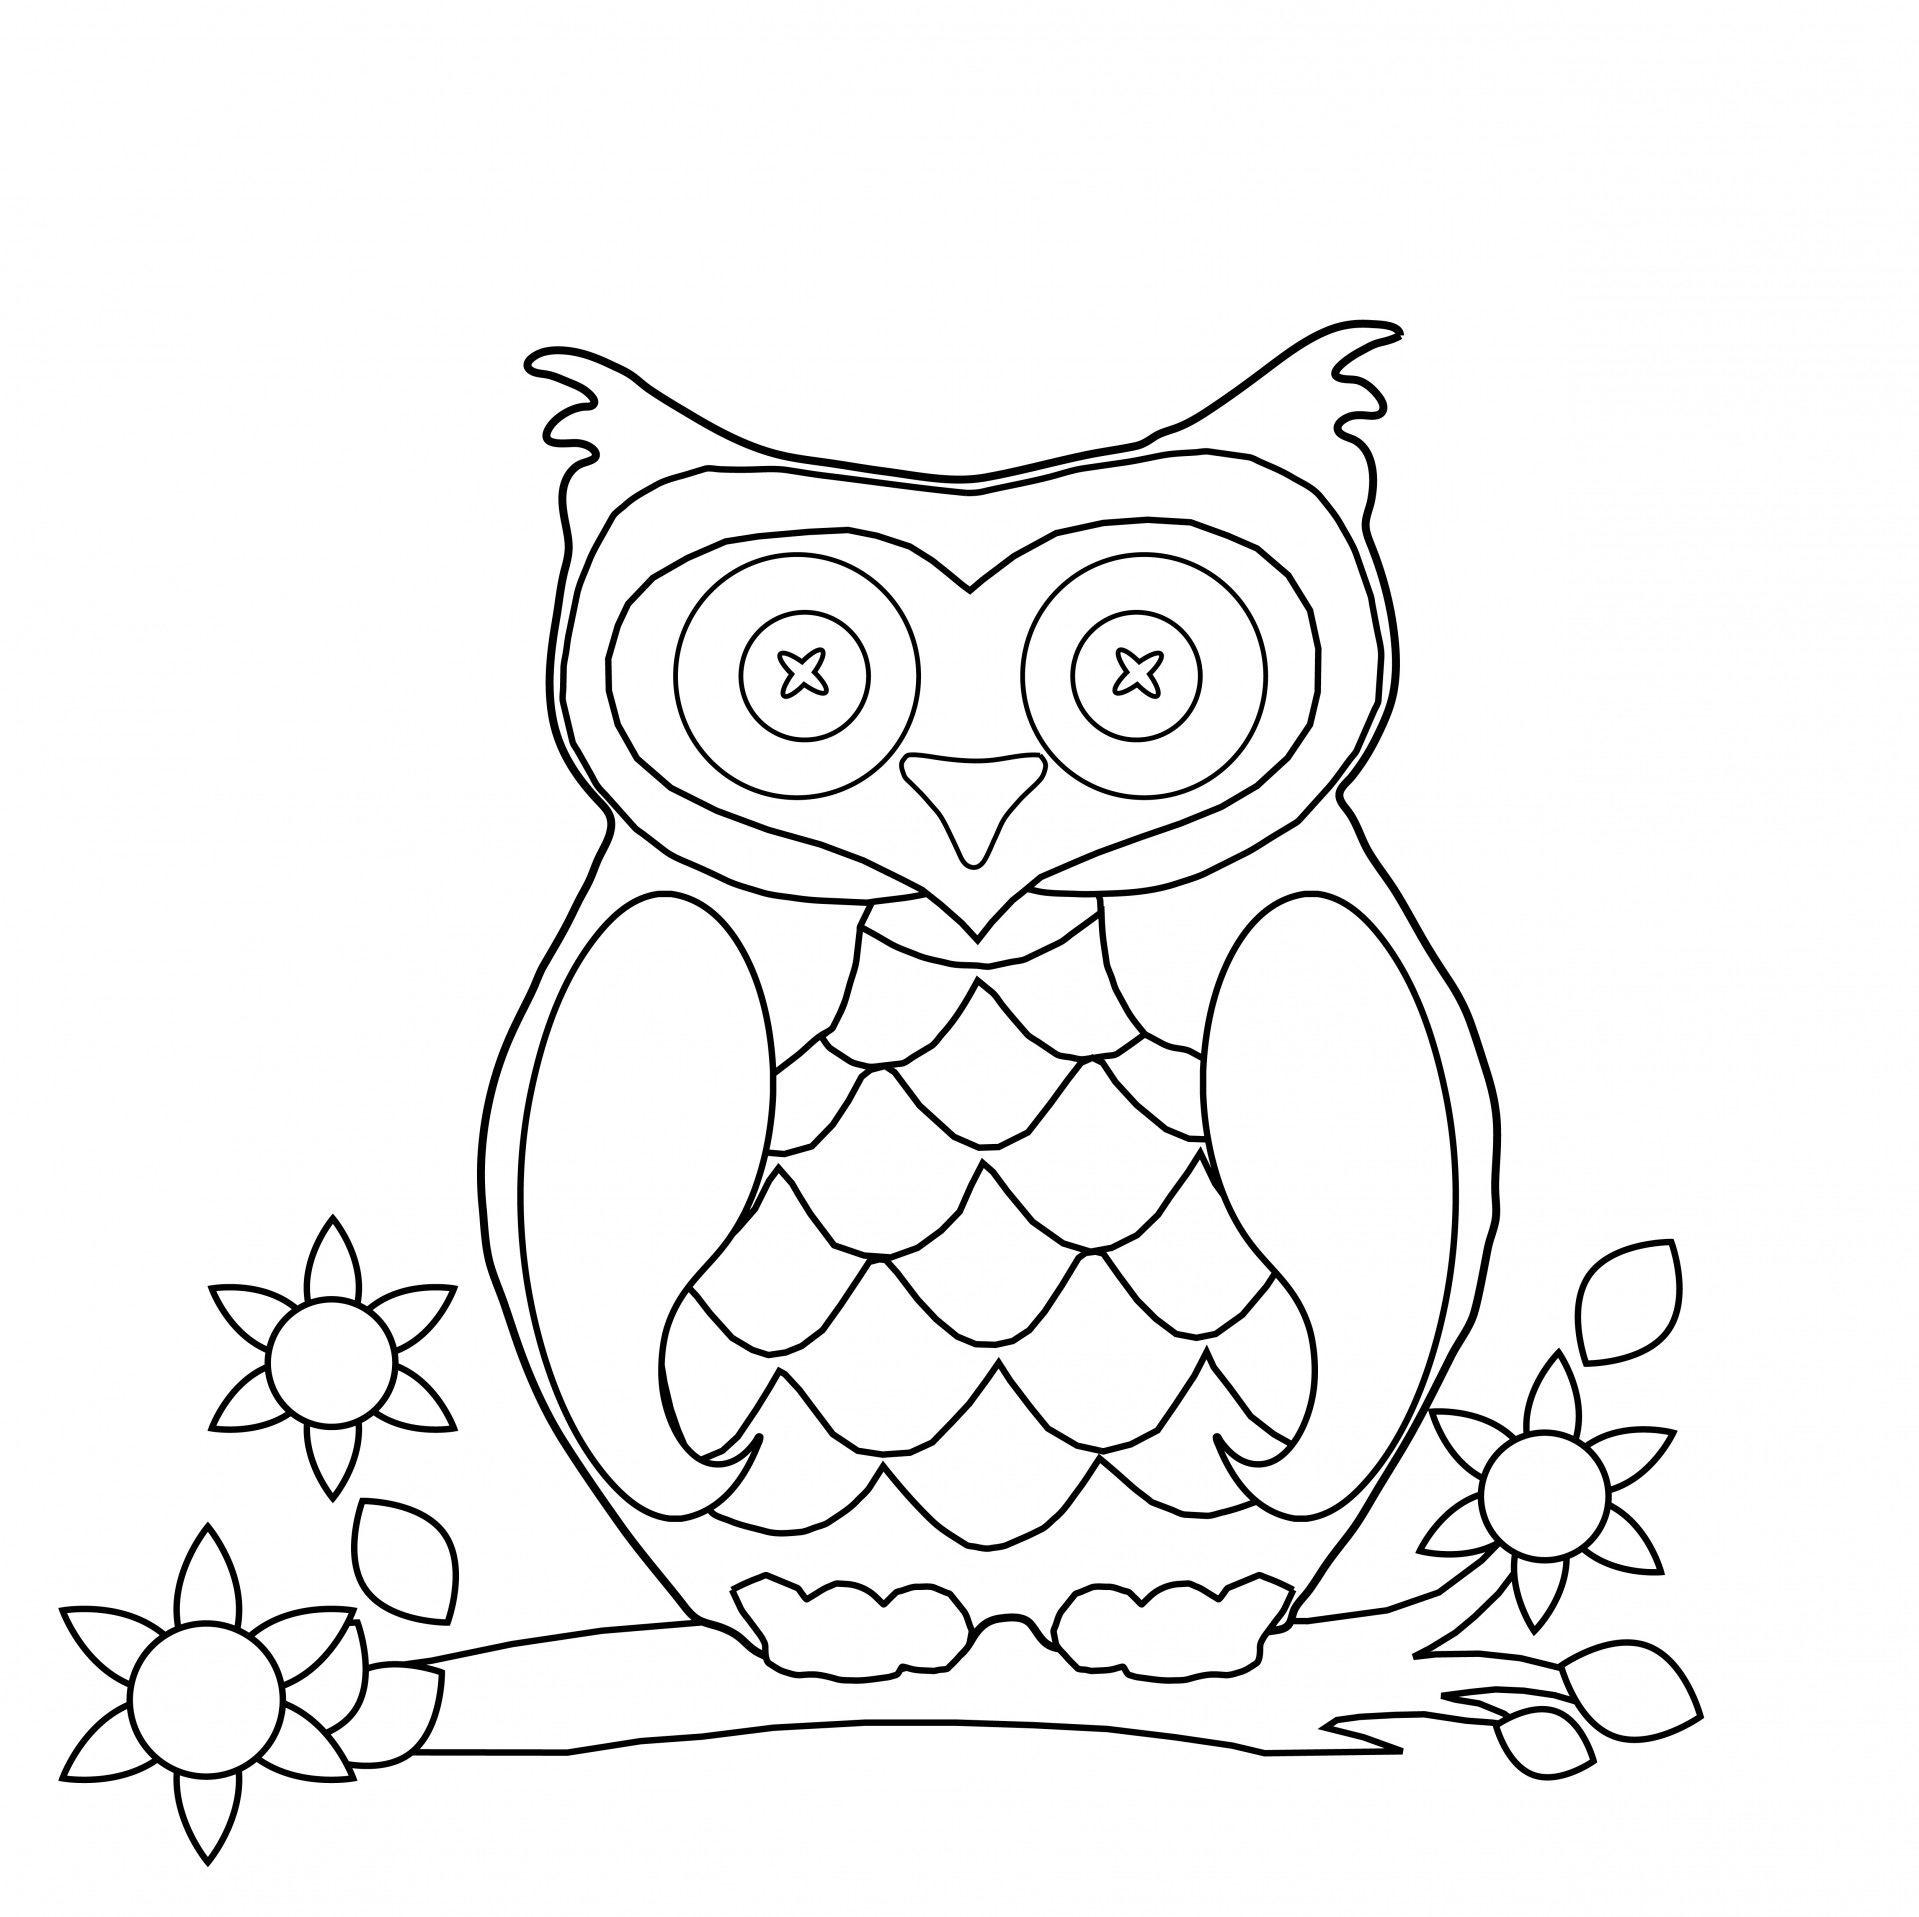 Coloring pages to print for free